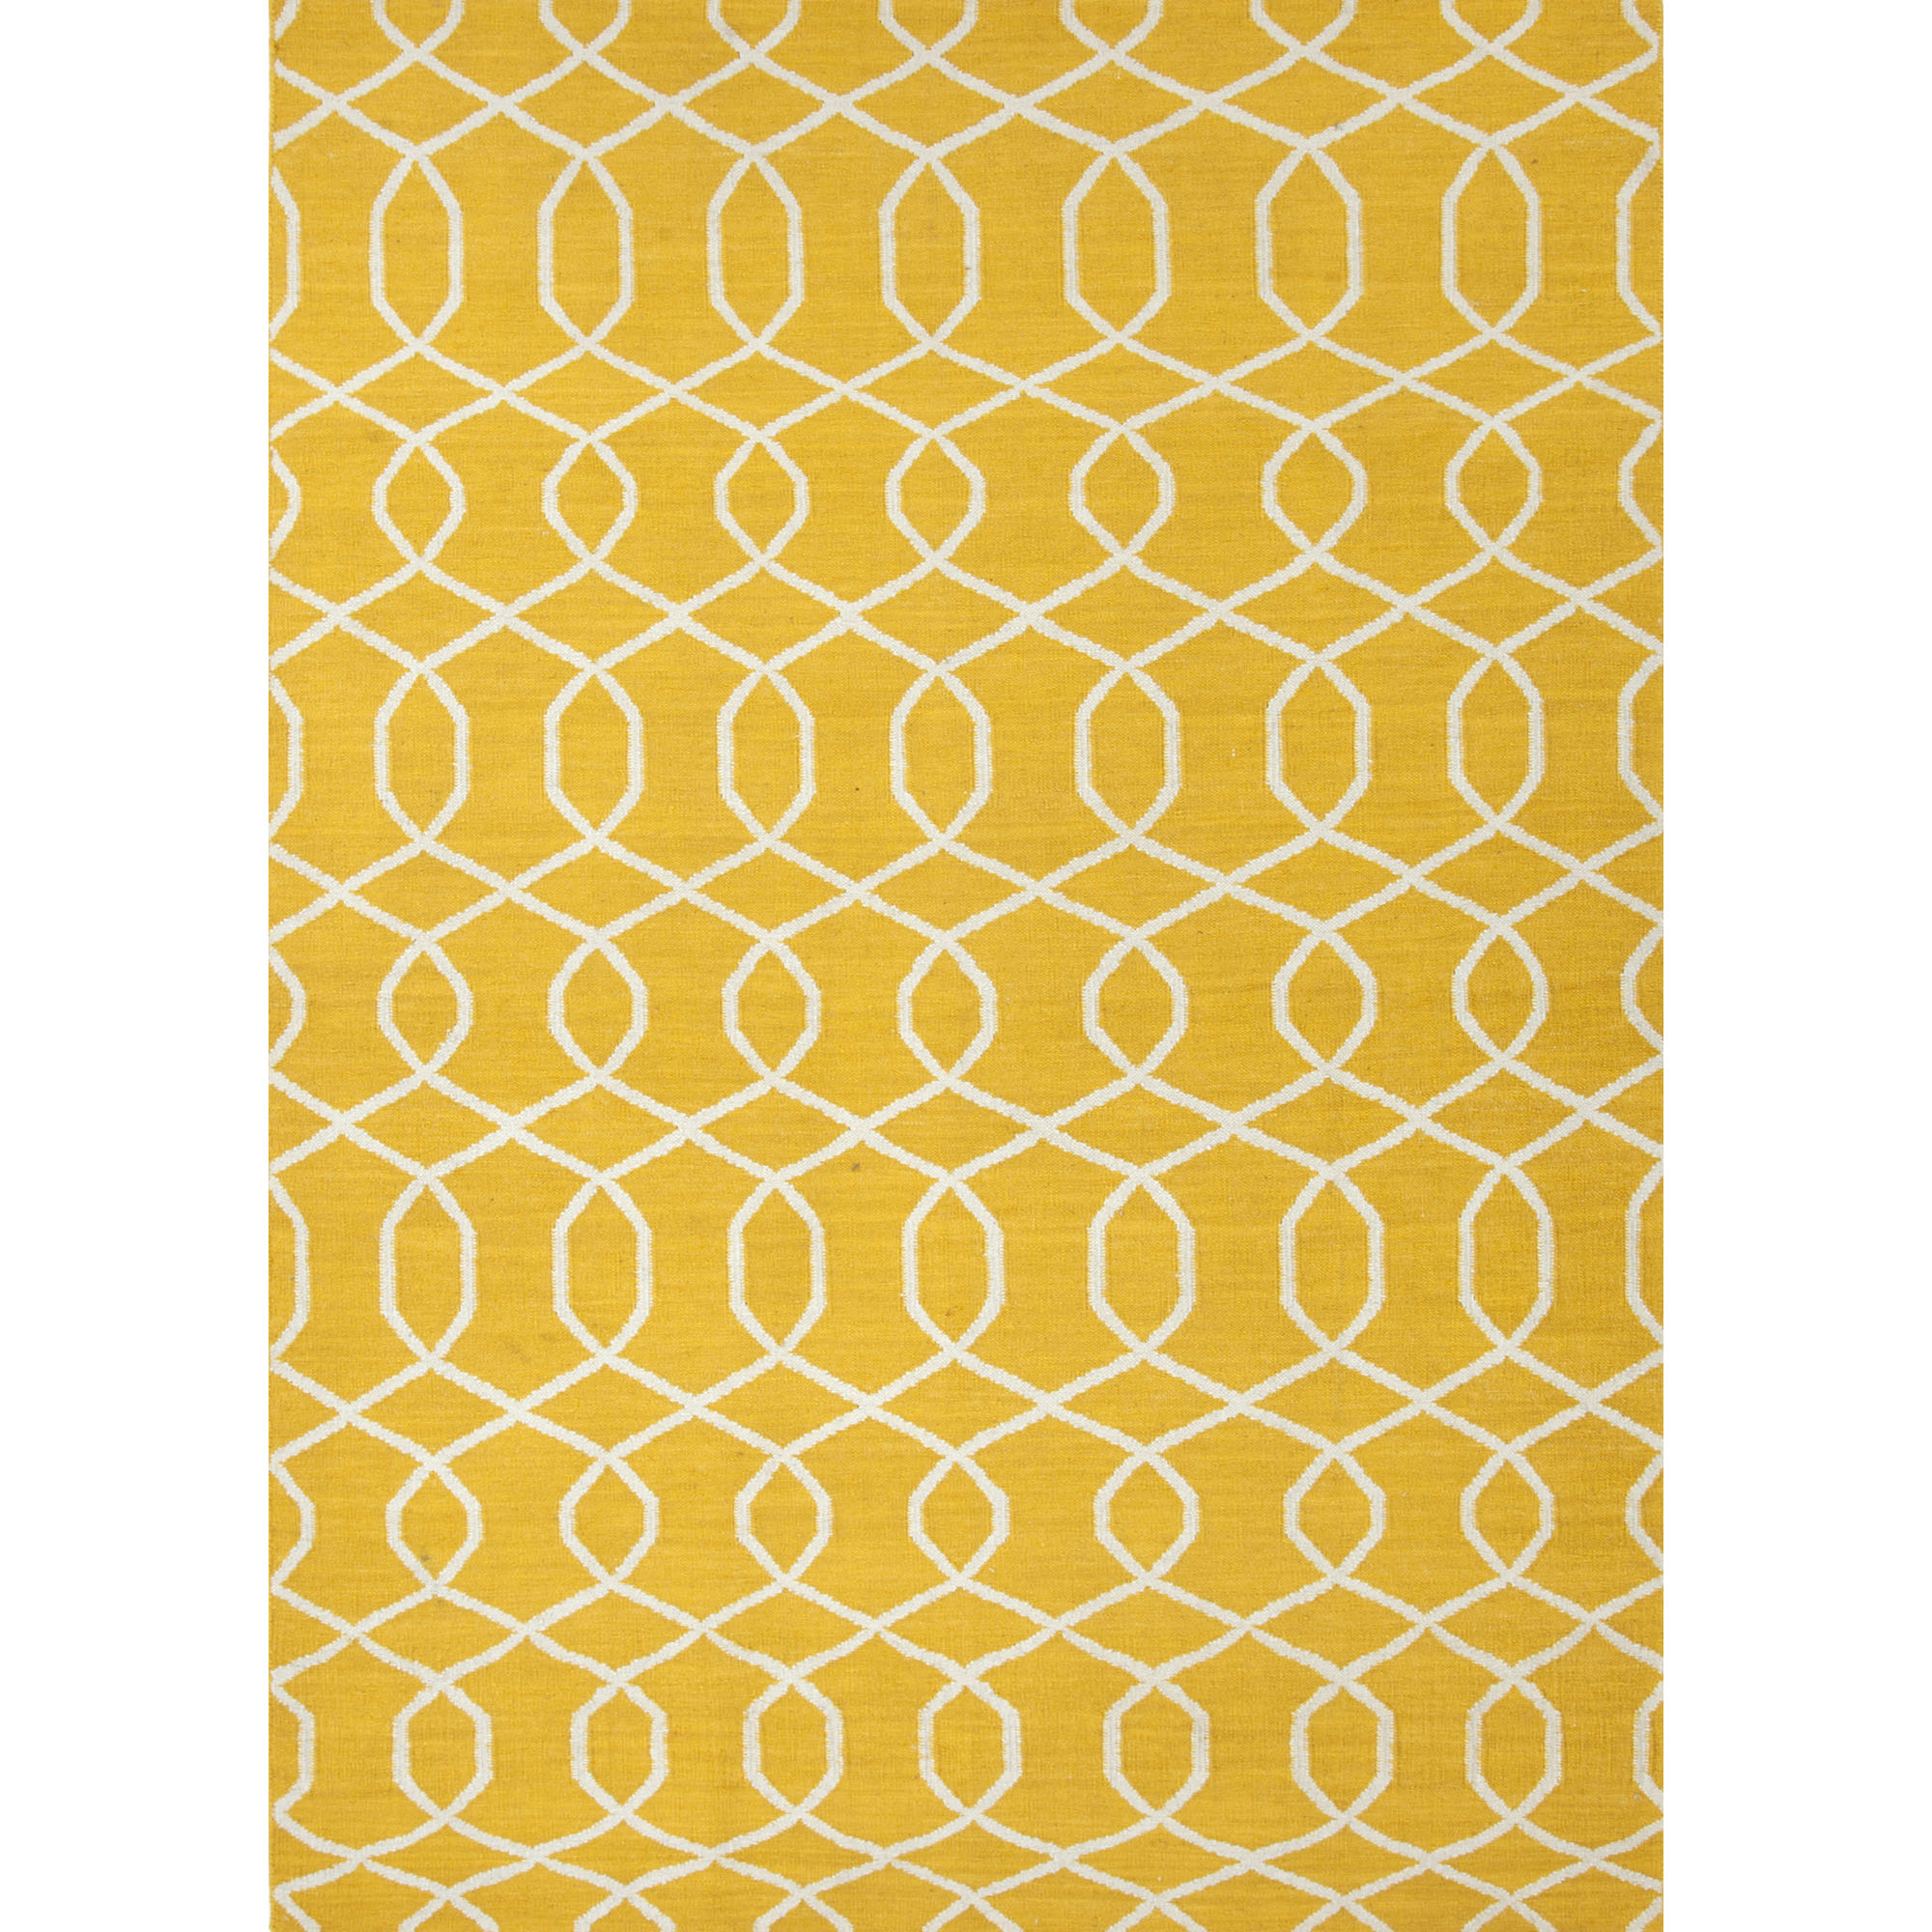 JAIPUR Rugs Urban Bungalow 3.6 x 5.6 Rug - Item Number: RUG102740